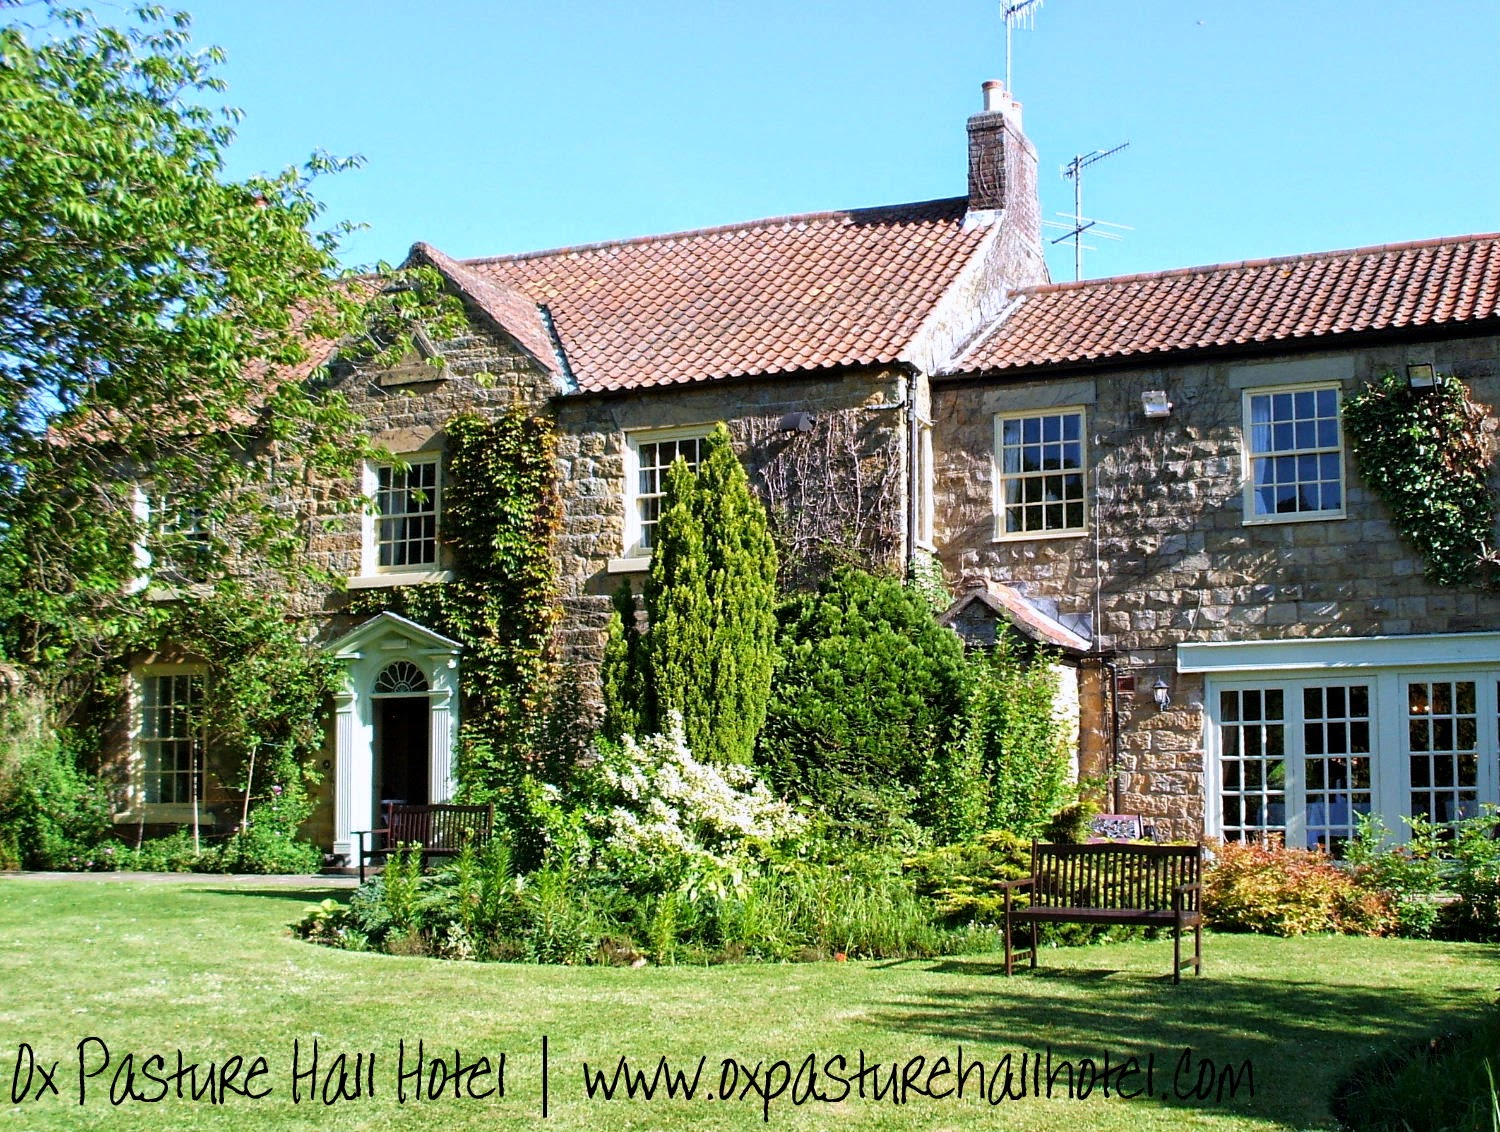 Ox Pasture Hall Hotel: Yorkshire's Luxury Country House Hotel | Anyonita-nibbles.co.uk